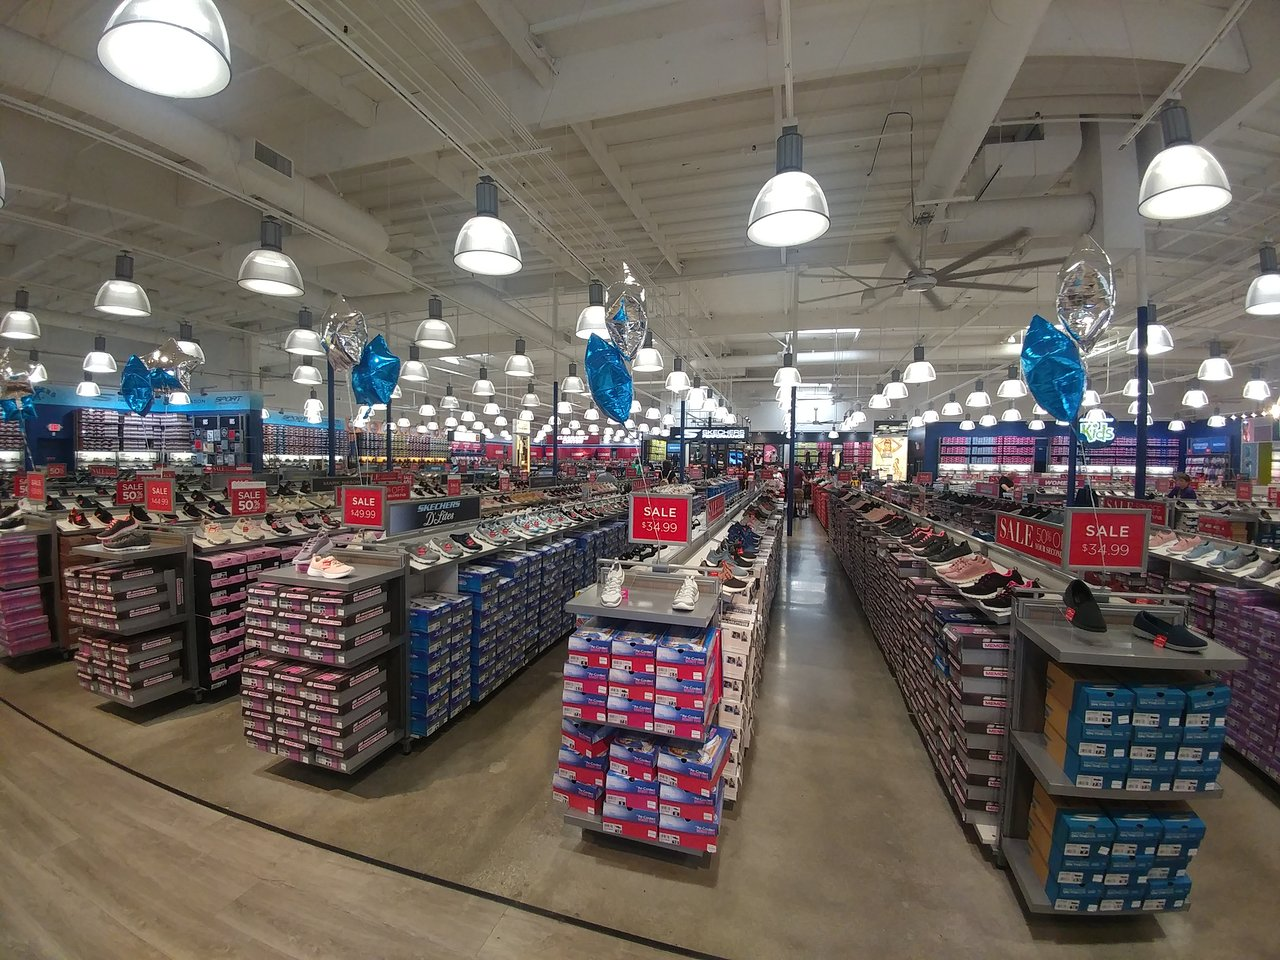 Melódico soltero debate  Skechers Factory Outlet (Gardena) - 2021 All You Need to Know BEFORE You Go  (with Photos) - Tripadvisor